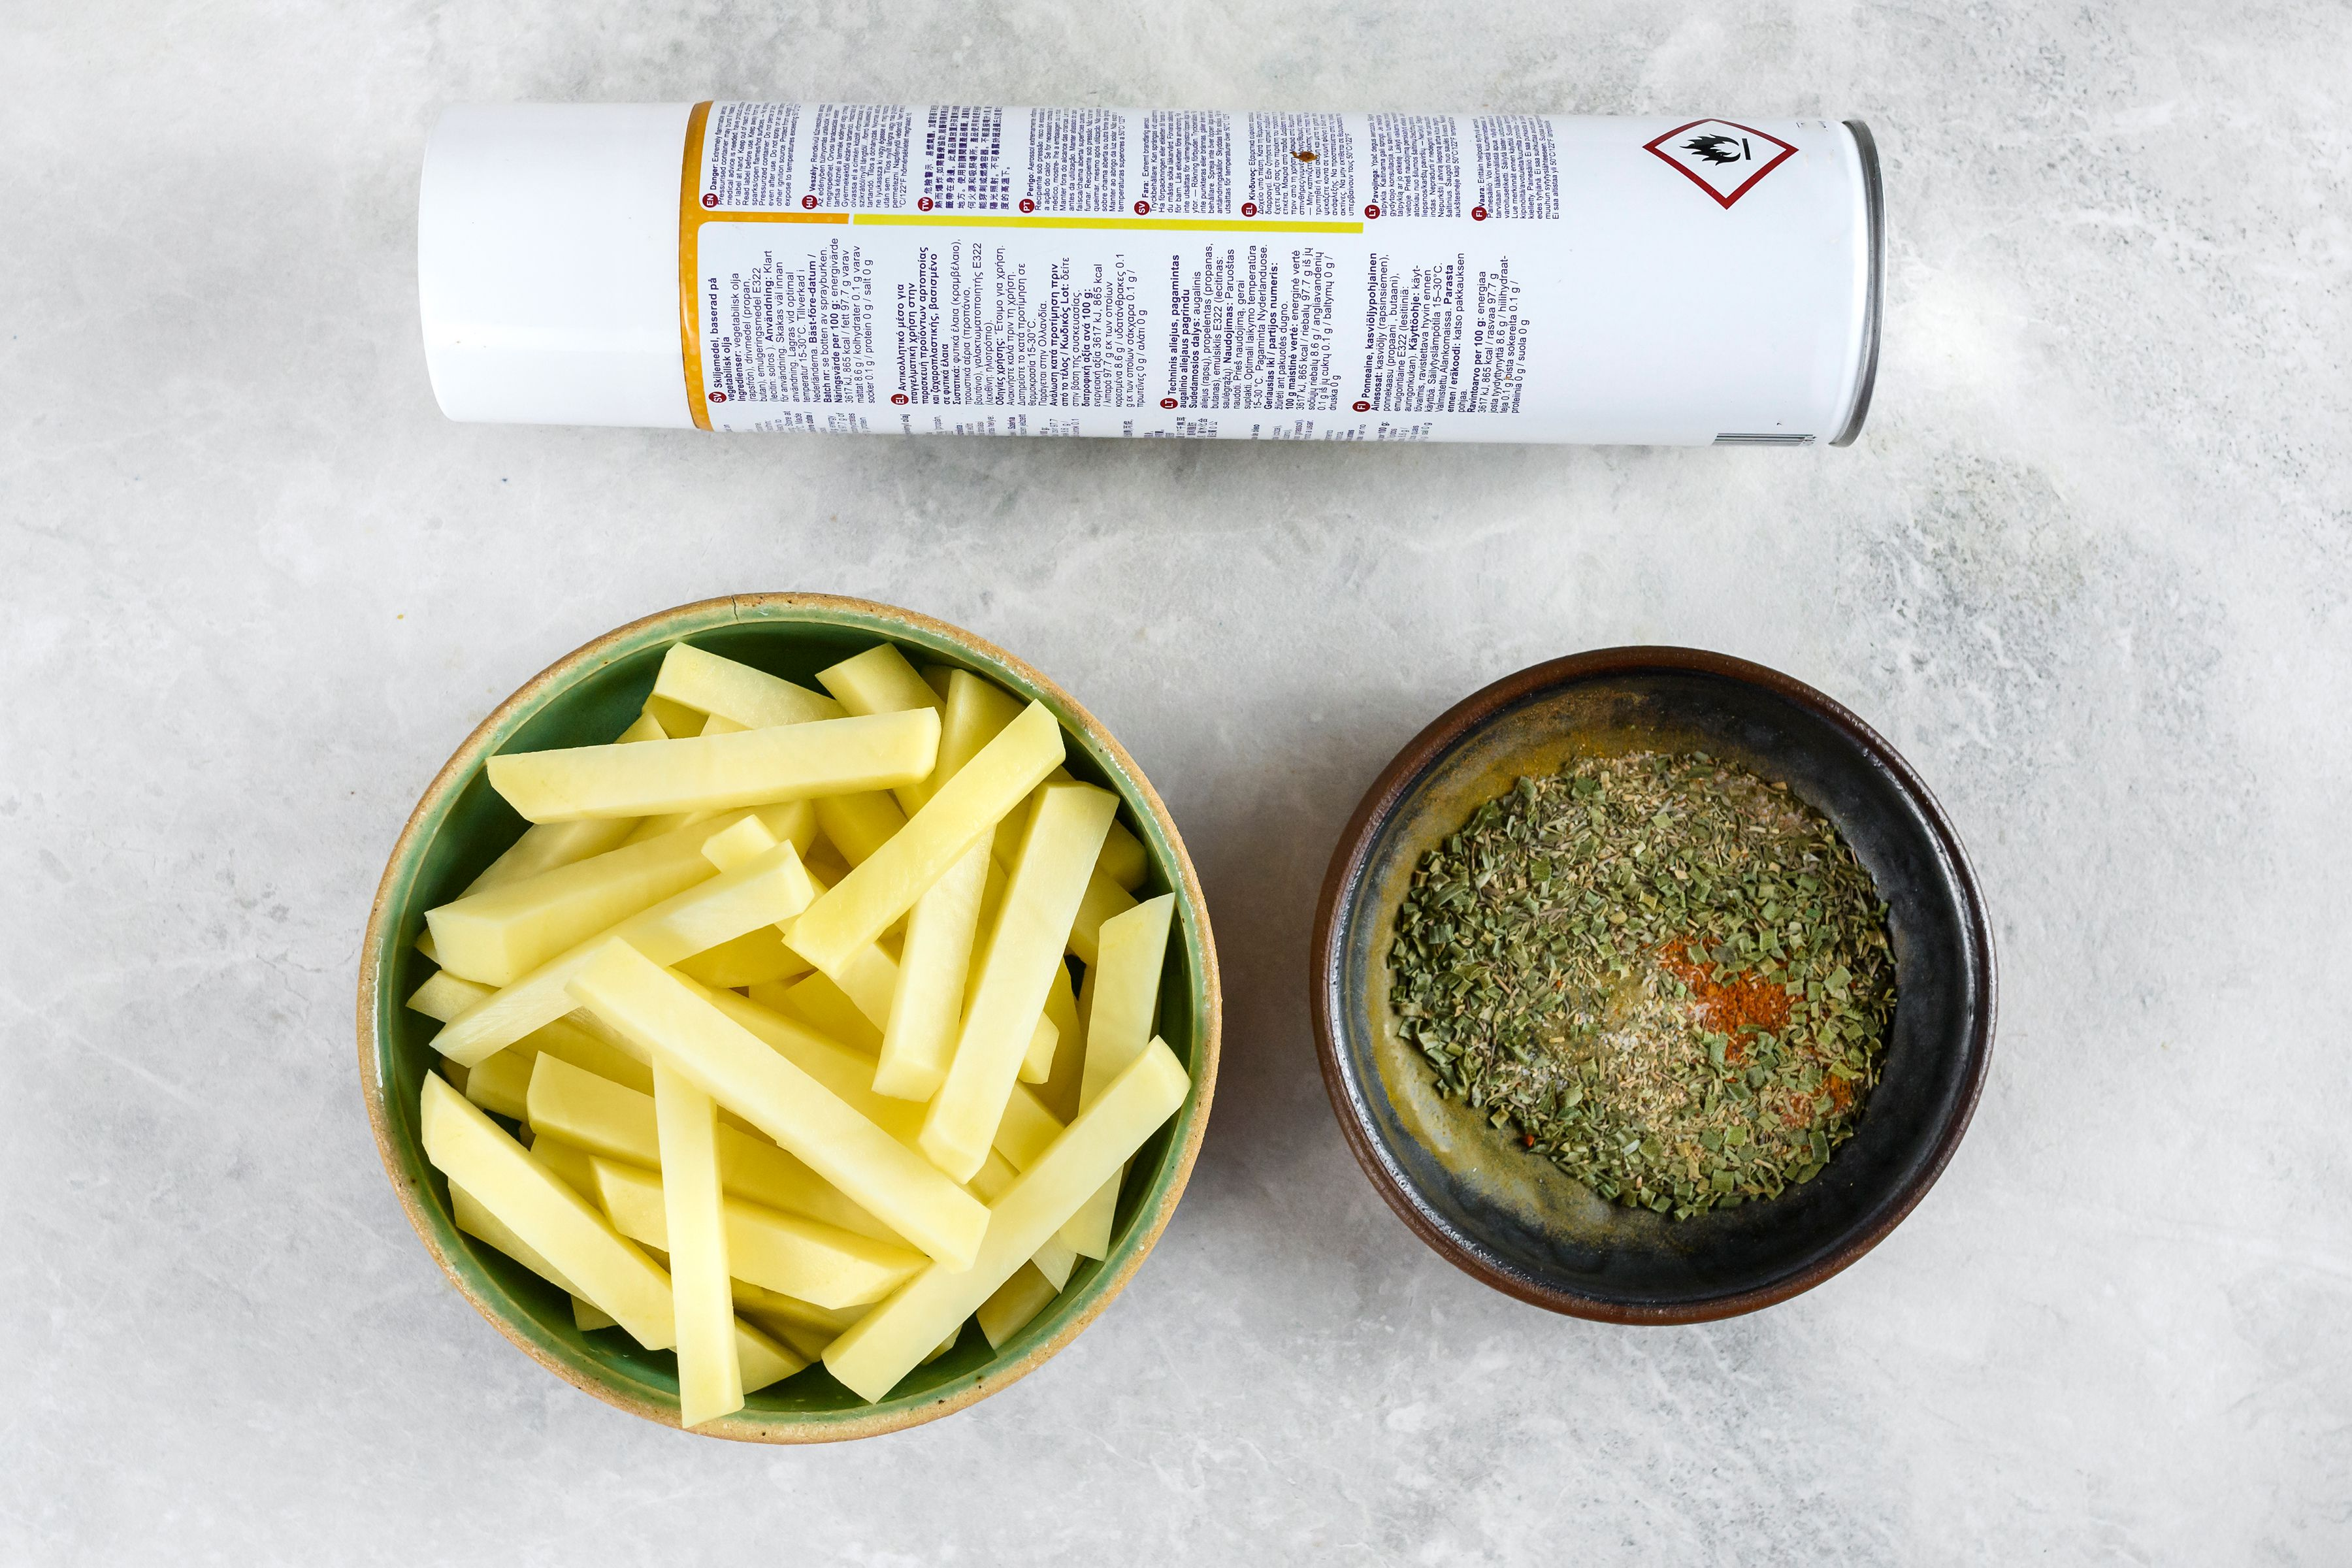 Ingredients for oven fries